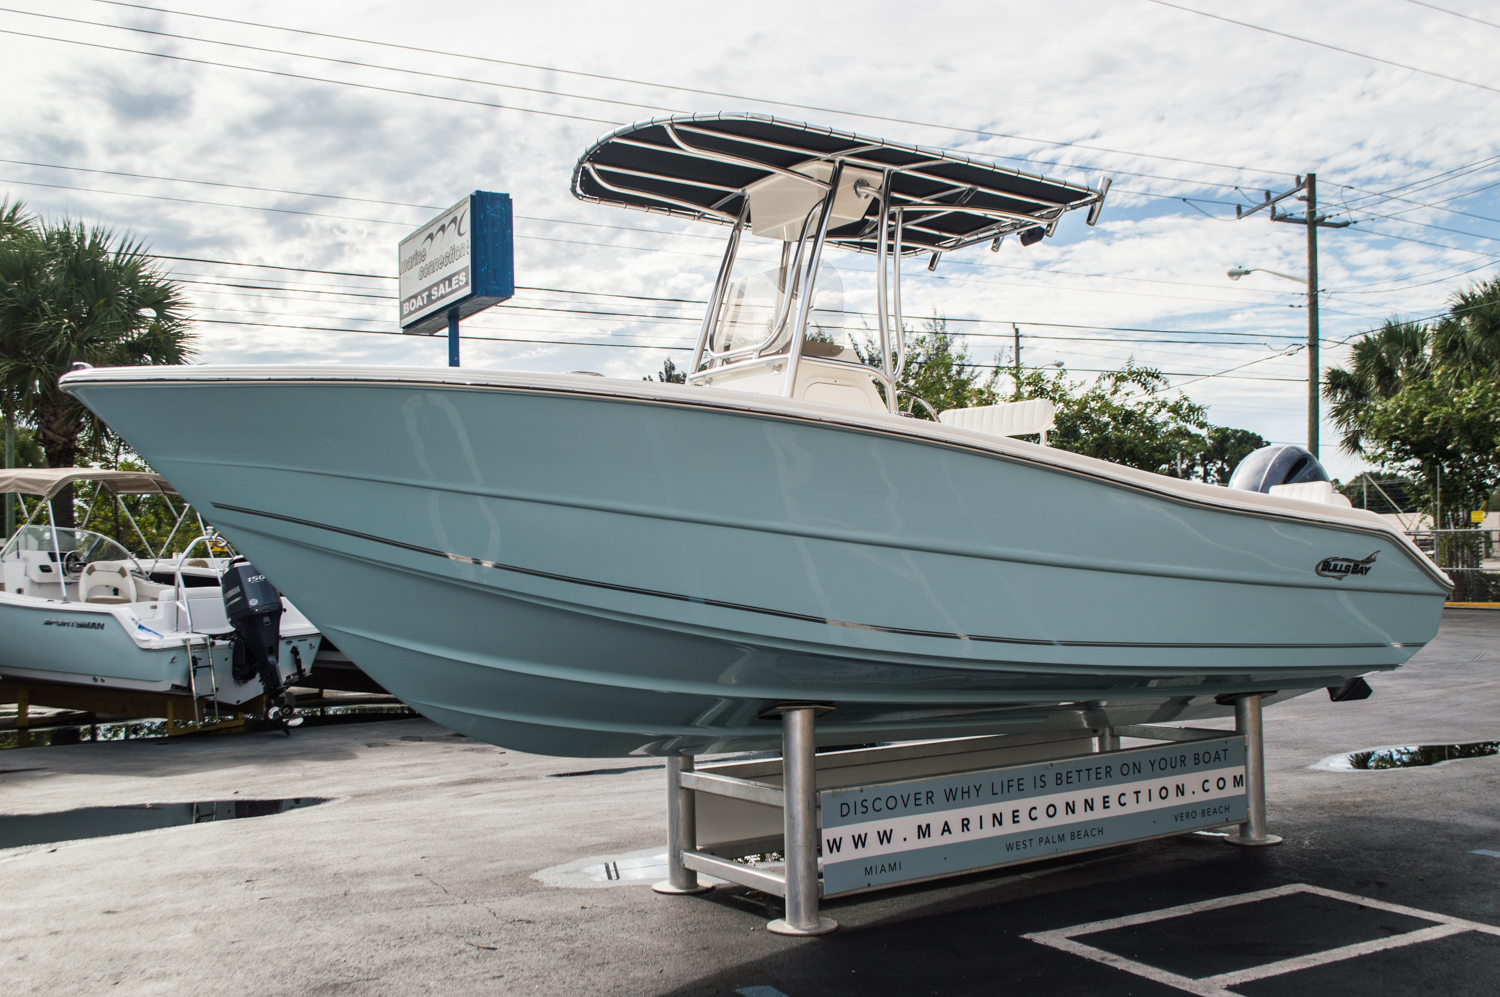 Thumbnail 3 for New 2016 Bulls Bay 230 CC Center Console boat for sale in West Palm Beach, FL